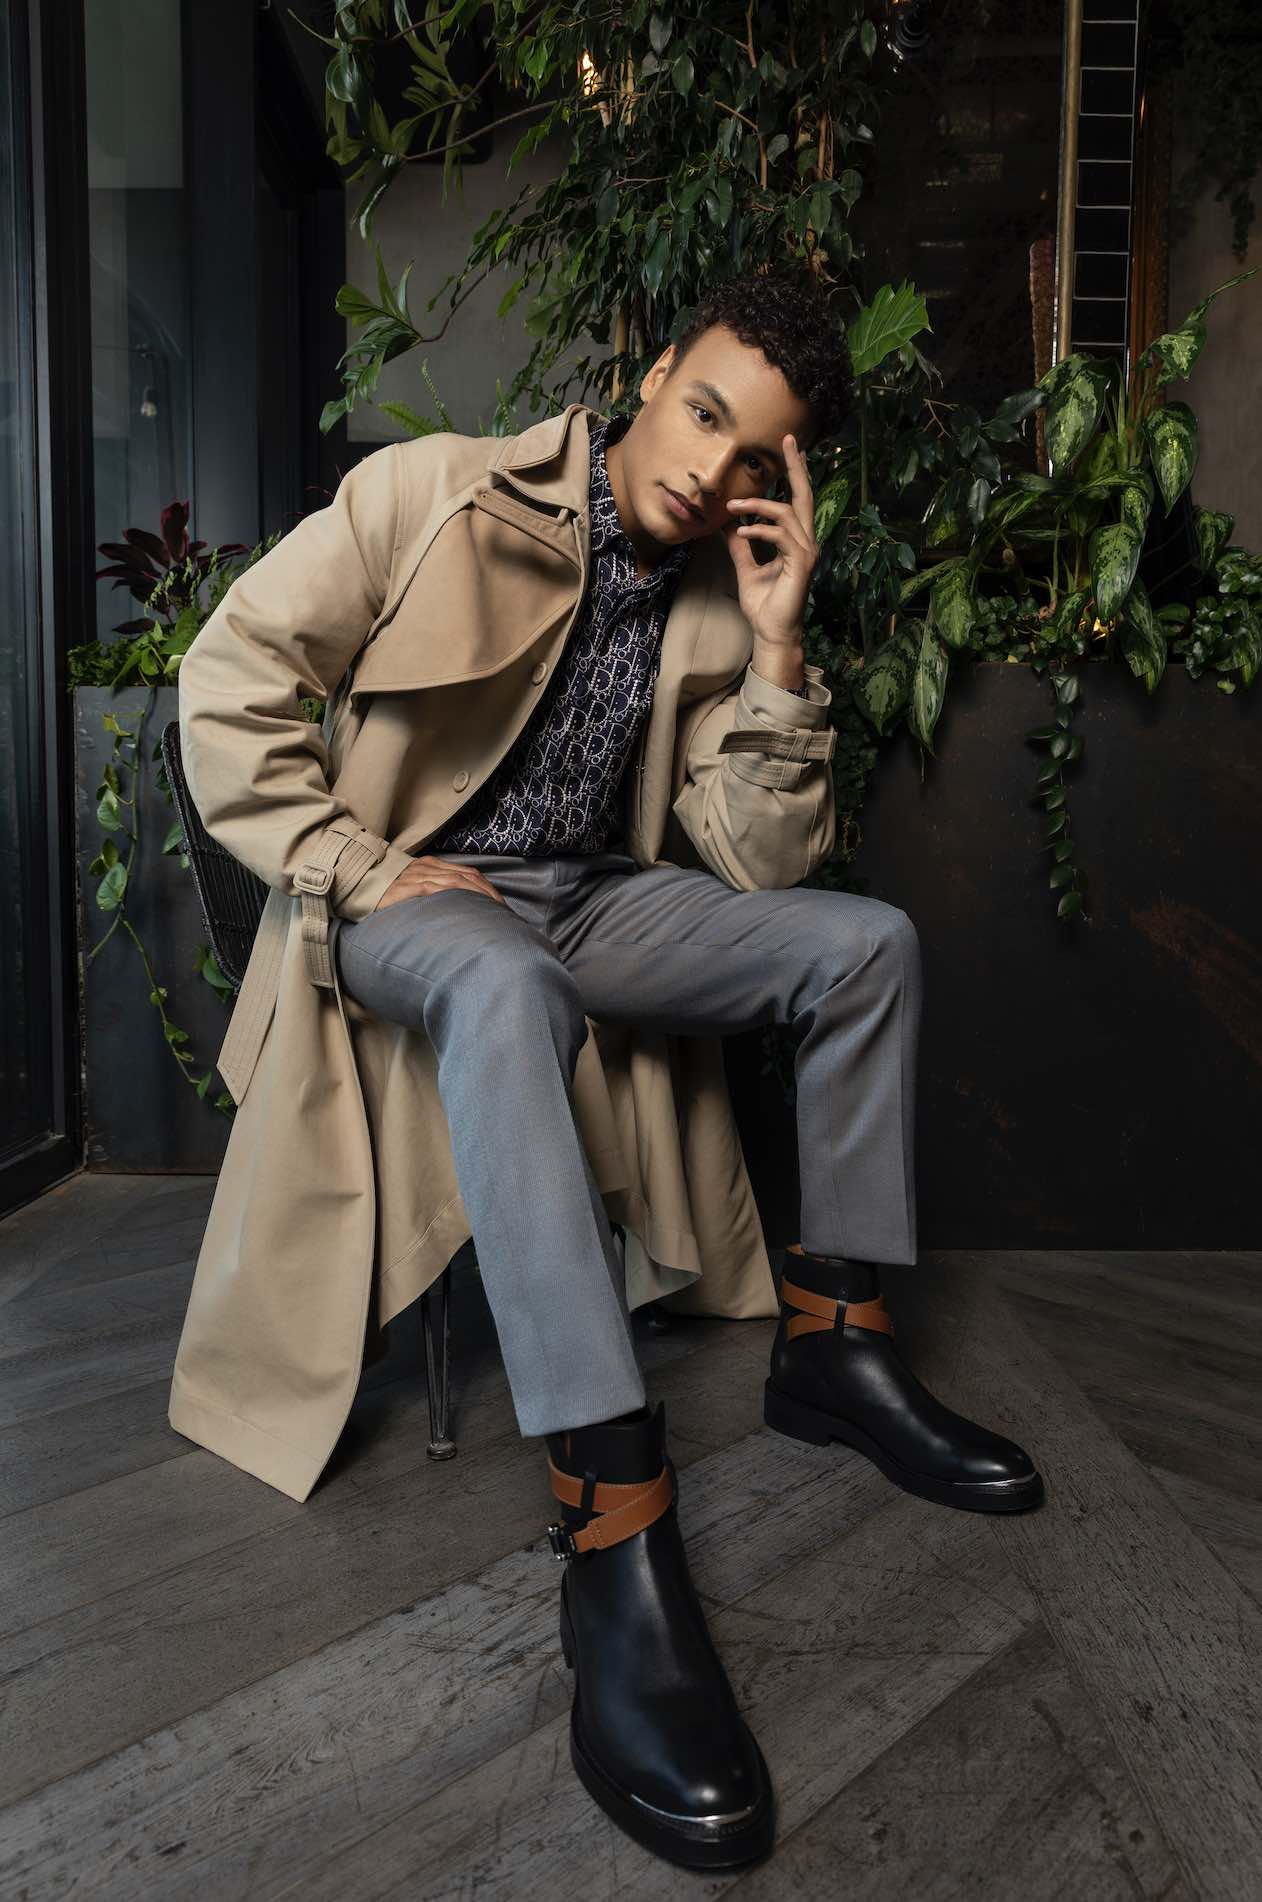 Male model sitting wearing long jacket trousers and shoes